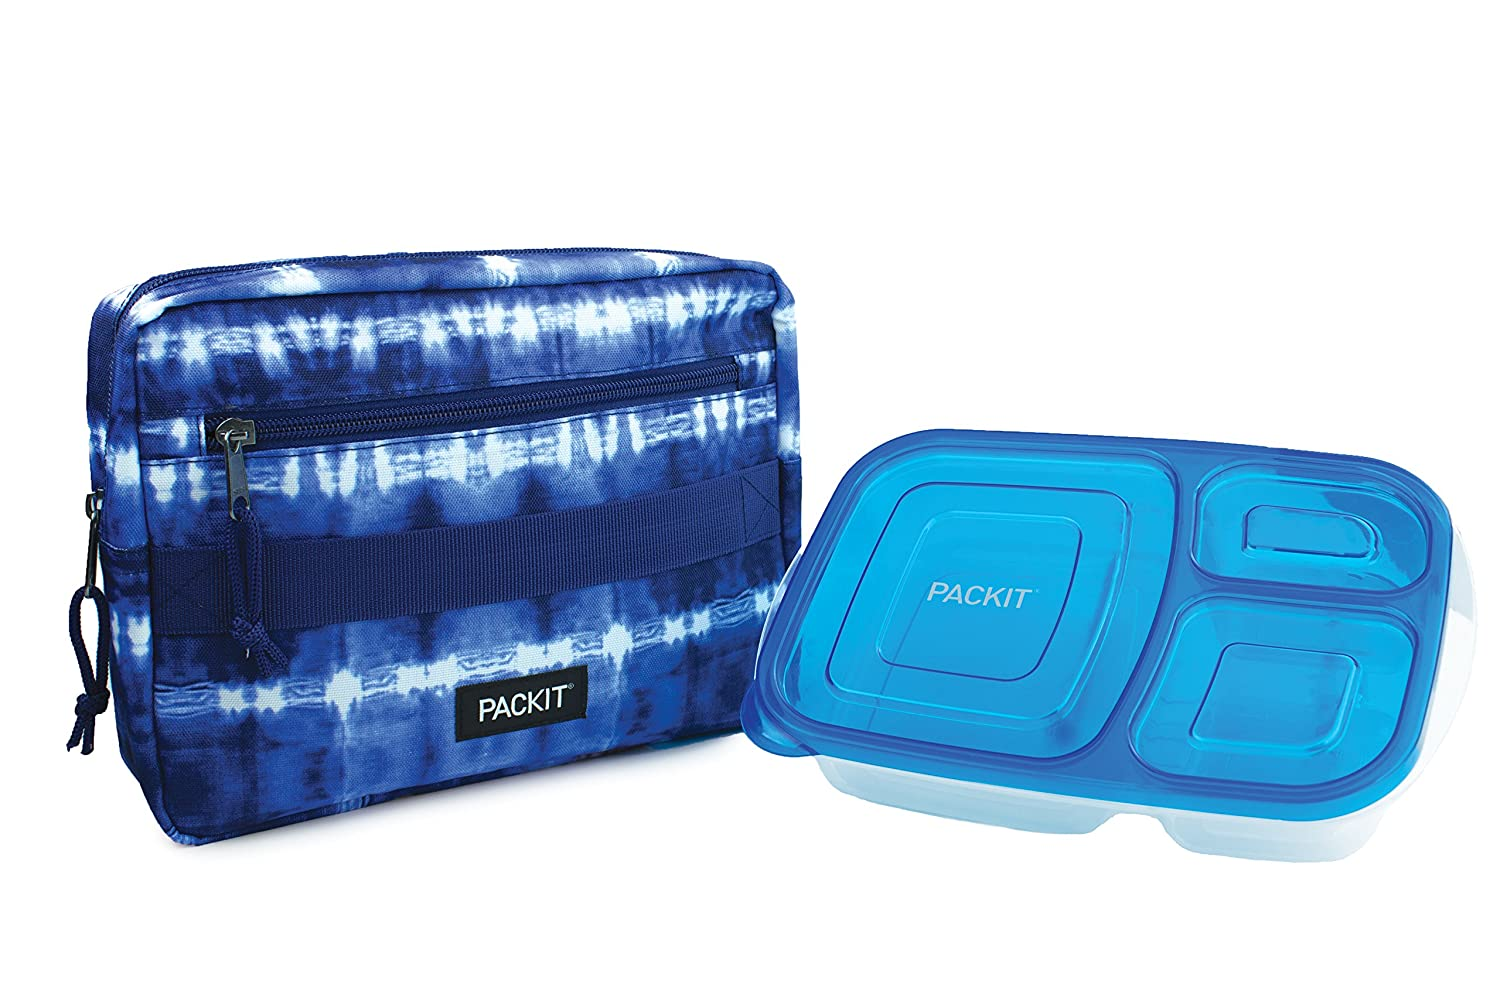 PackIt Freezable Bento Box Set: Freezable Sleeve and Reusable Bento Box Container, Tie Dye